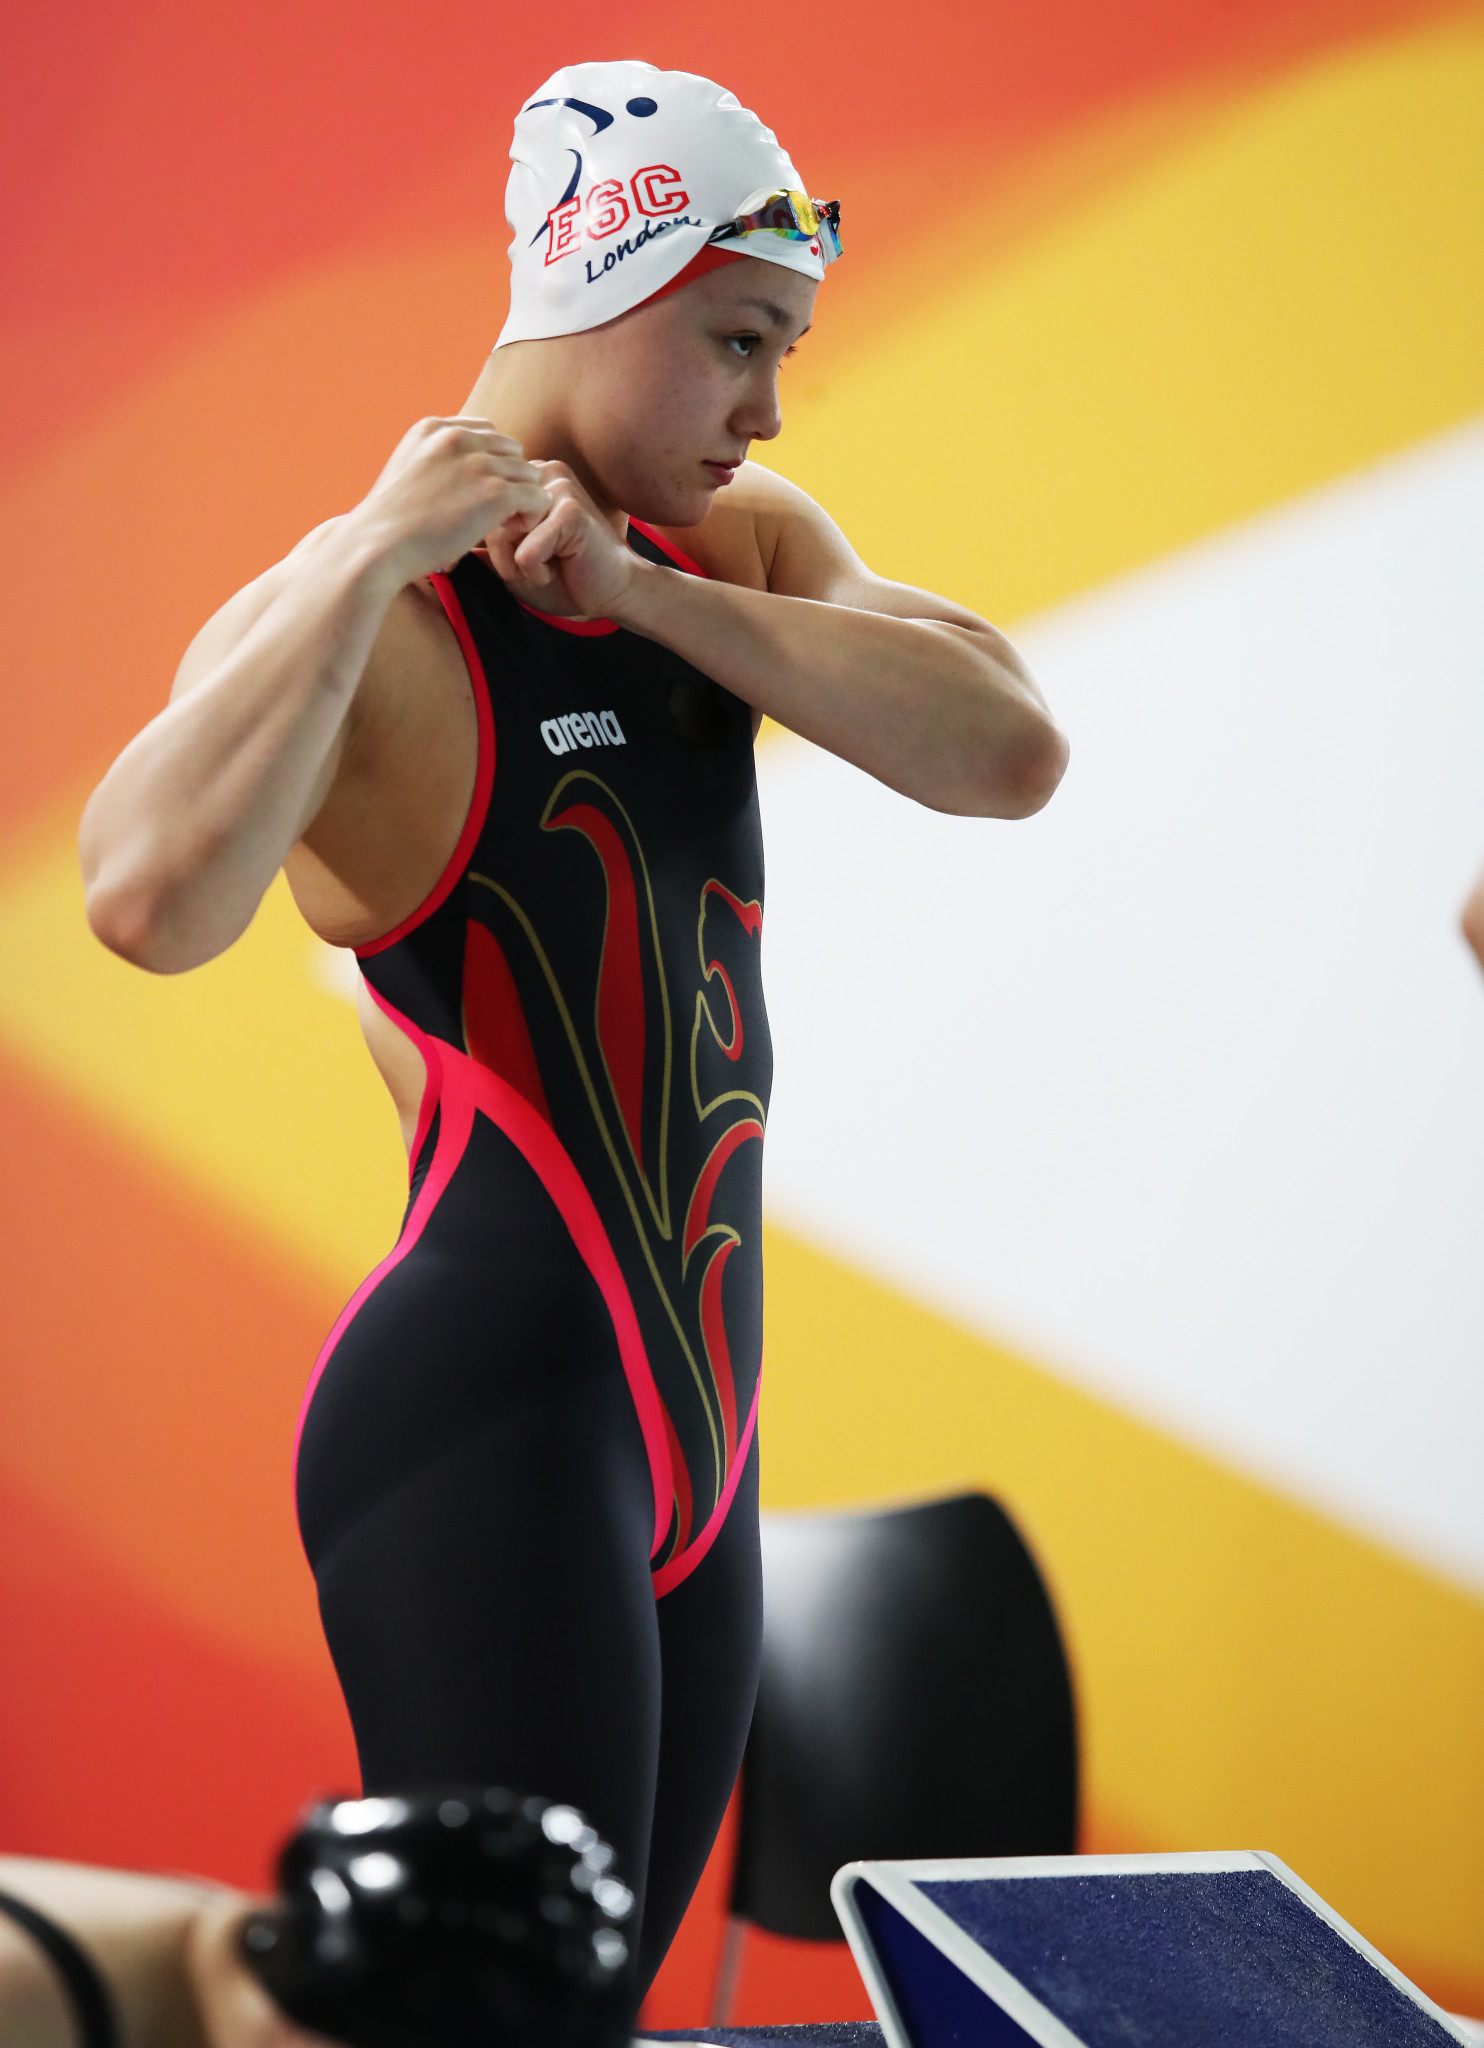 Britain's Alice Tai earned another win following her previous day's gold at the World Para Swimming World Series event in Italy today ©Getty Images